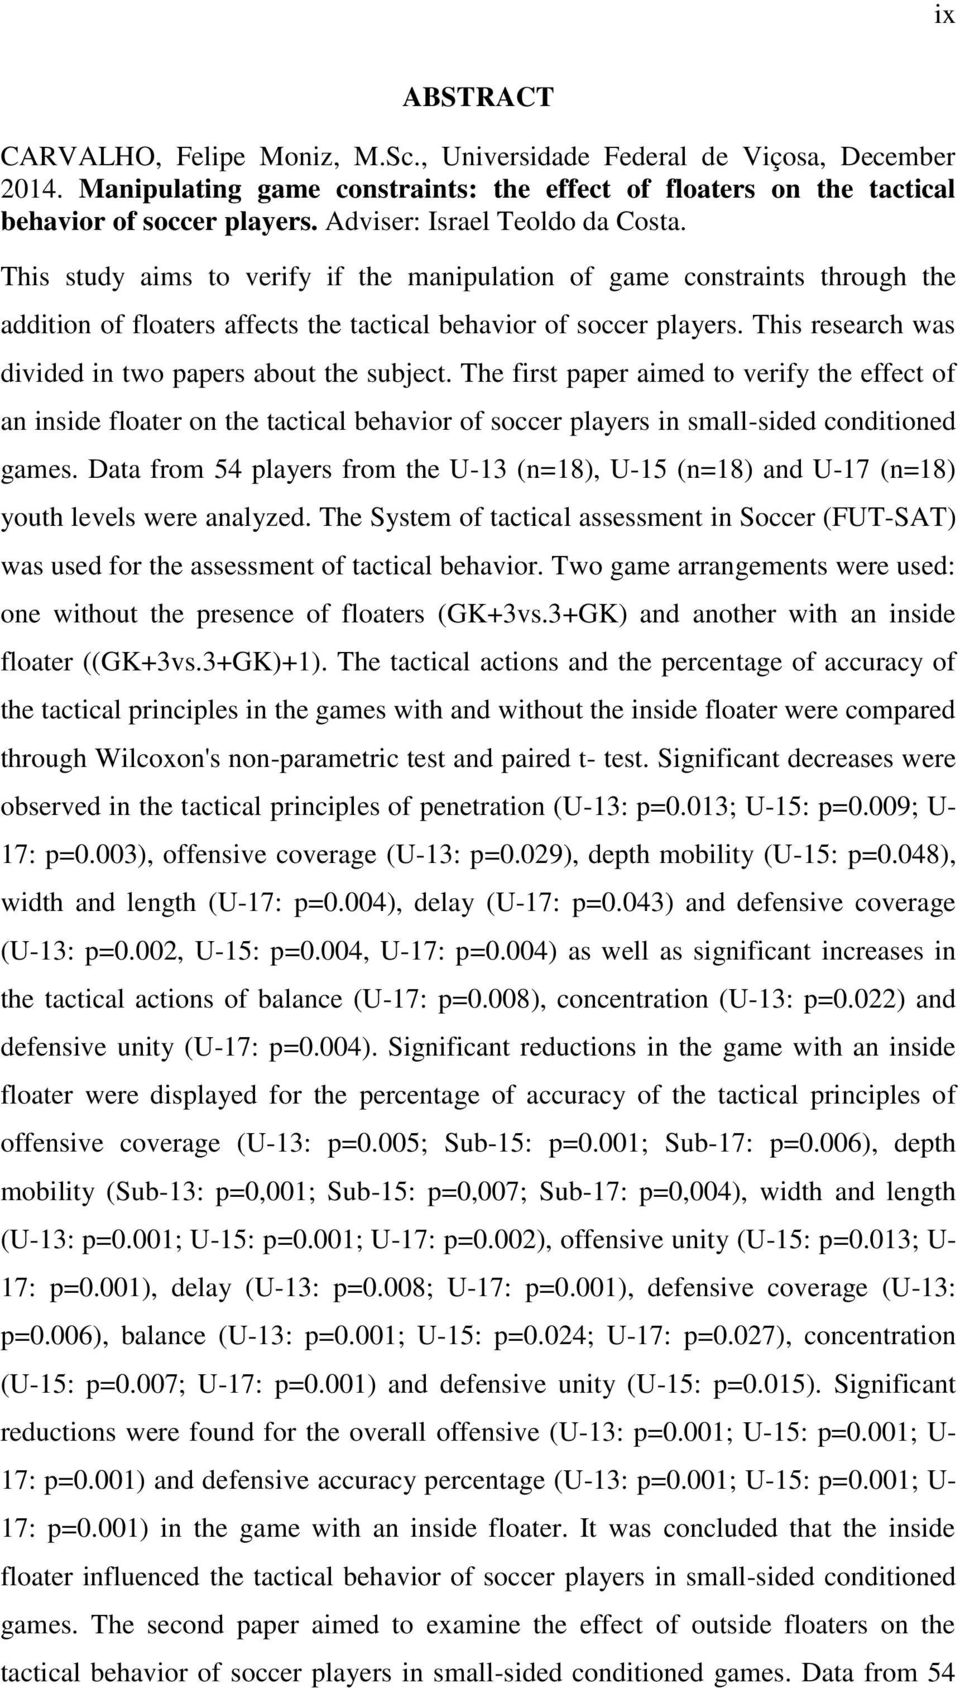 This research was divided in two papers about the subject. The first paper aimed to verify the effect of an inside floater on the tactical behavior of soccer players in small-sided conditioned games.